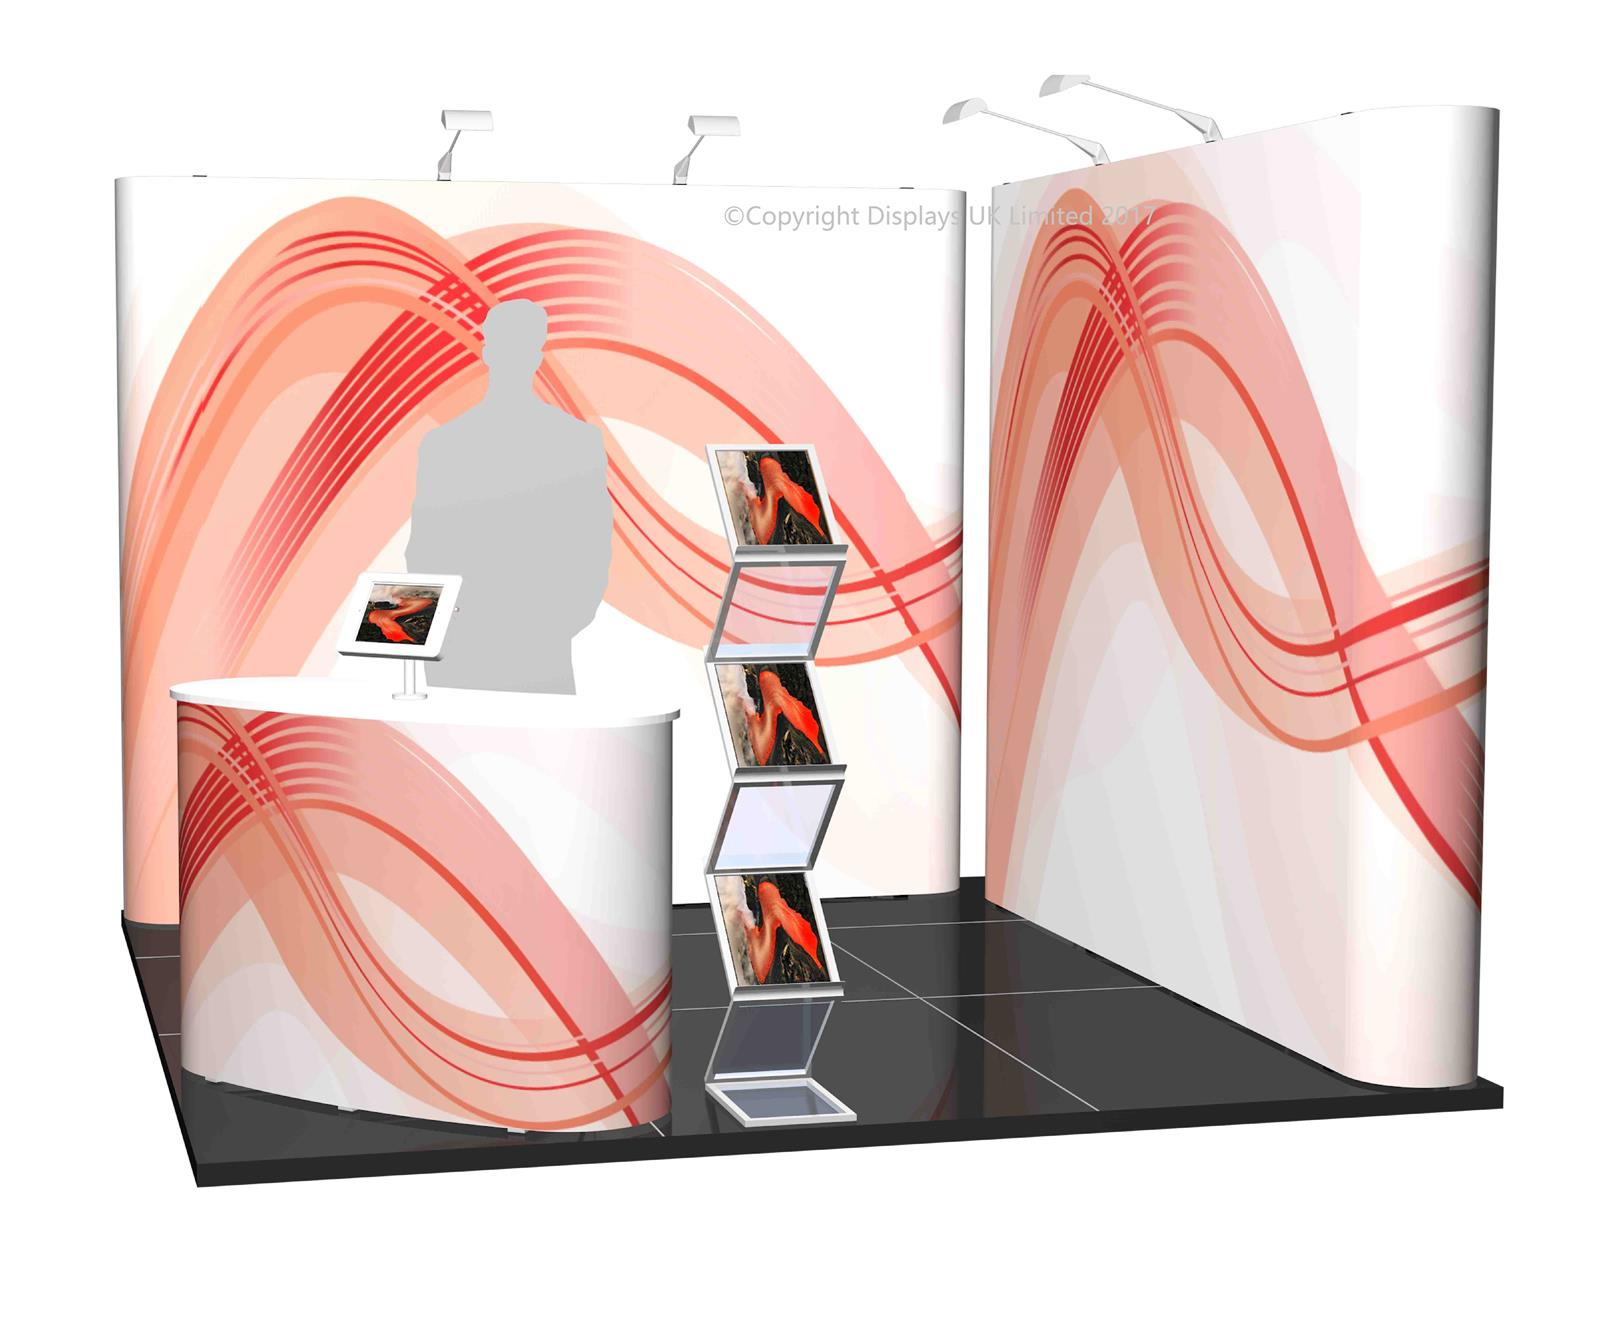 3m x 3m Linked Pop Up Exhibition Stand - Kit 16 - P3x3-2bS